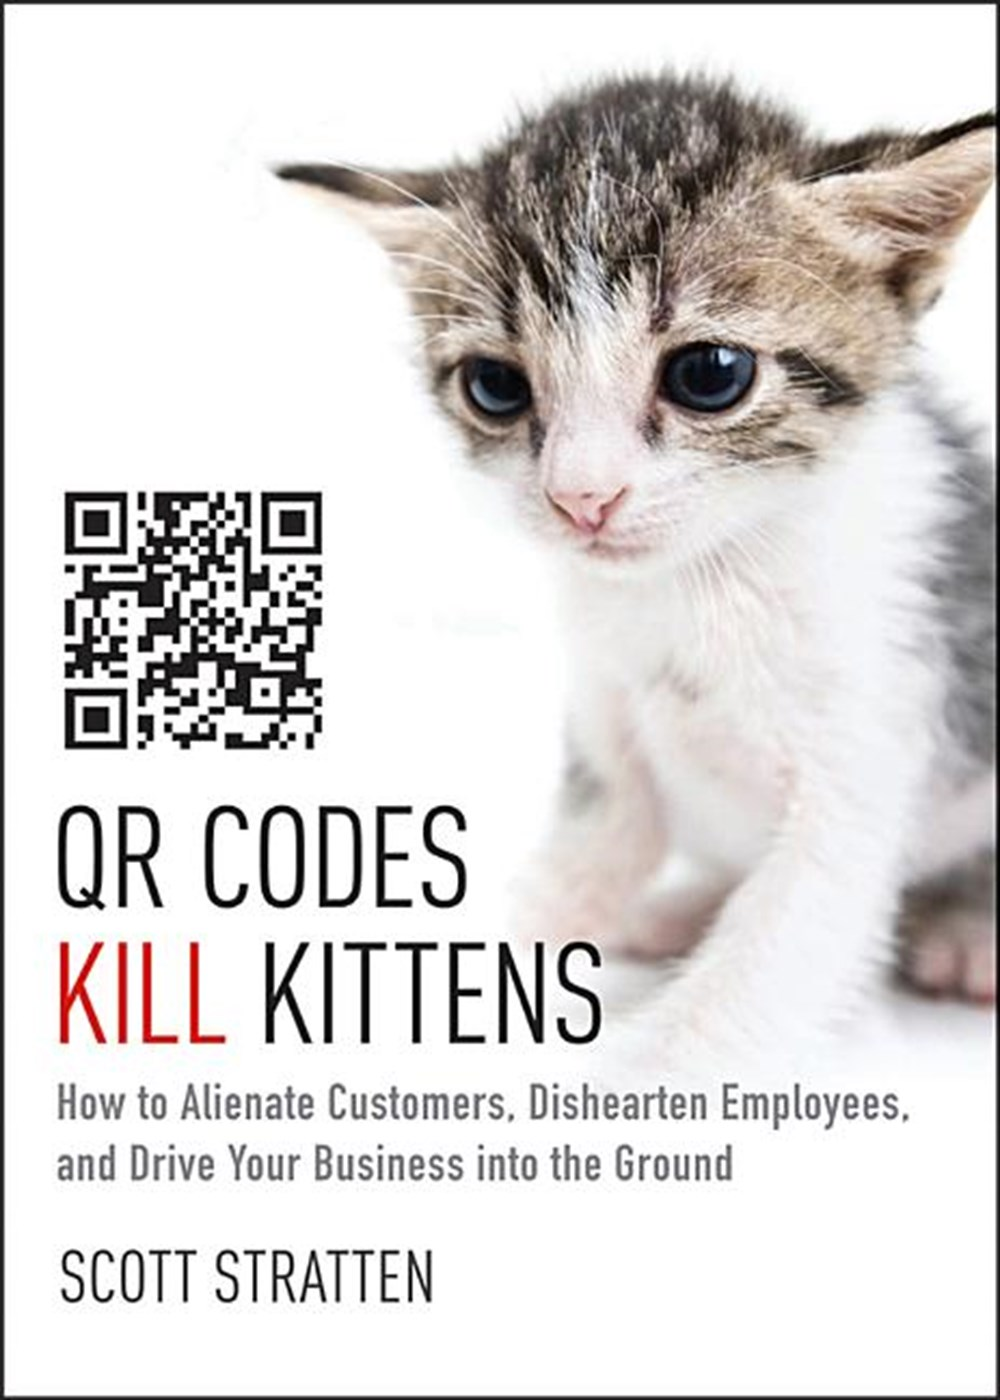 QR Codes Kill Kittens How to Alienate Customers, Dishearten Employees, and Drive Your Business Into